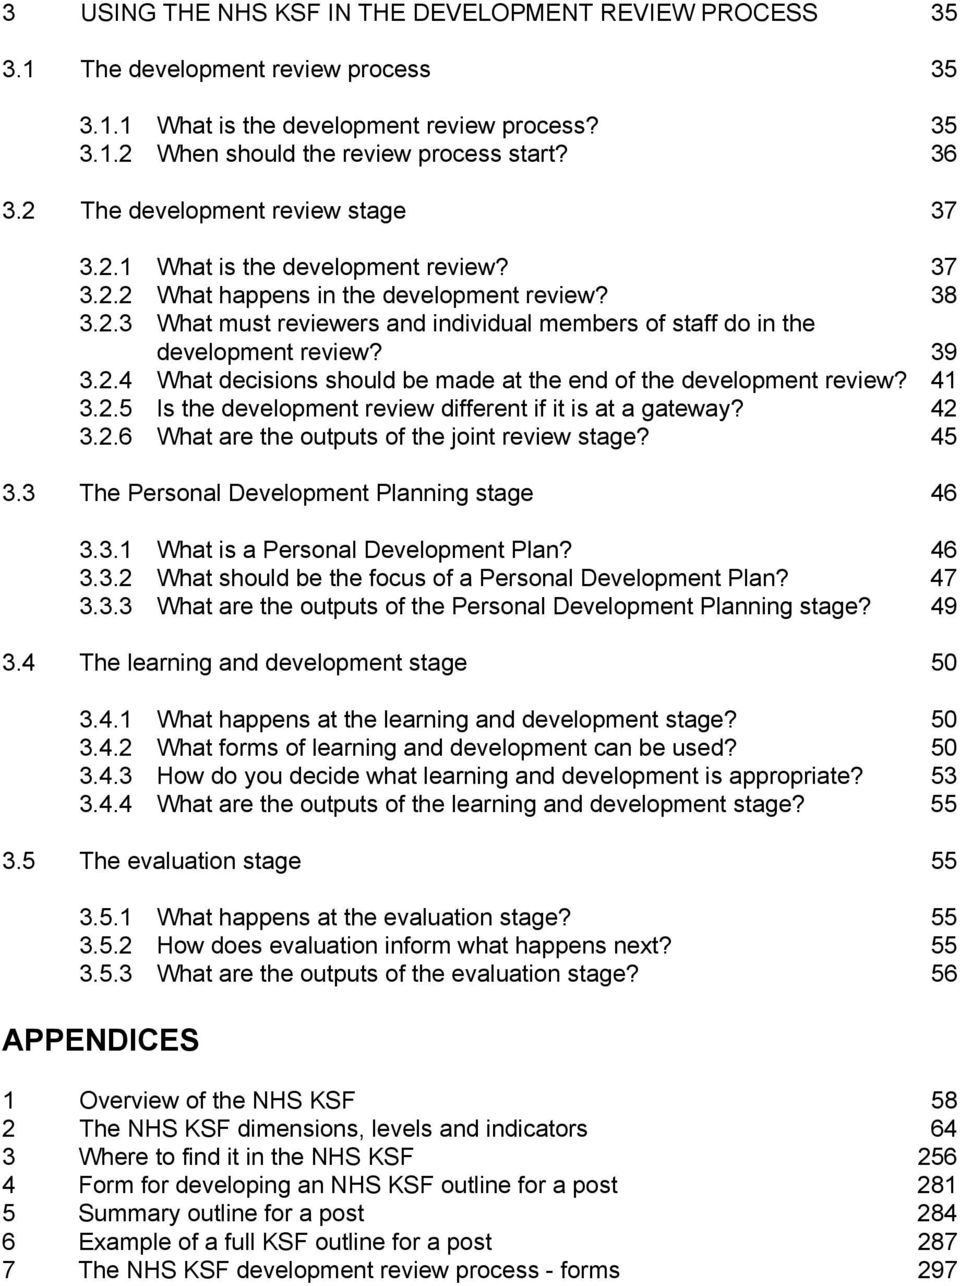 39 3.2.4 What decisions should be made at the end of the development review? 41 3.2.5 Is the development review different if it is at a gateway? 42 3.2.6 What are the outputs of the joint review stage?